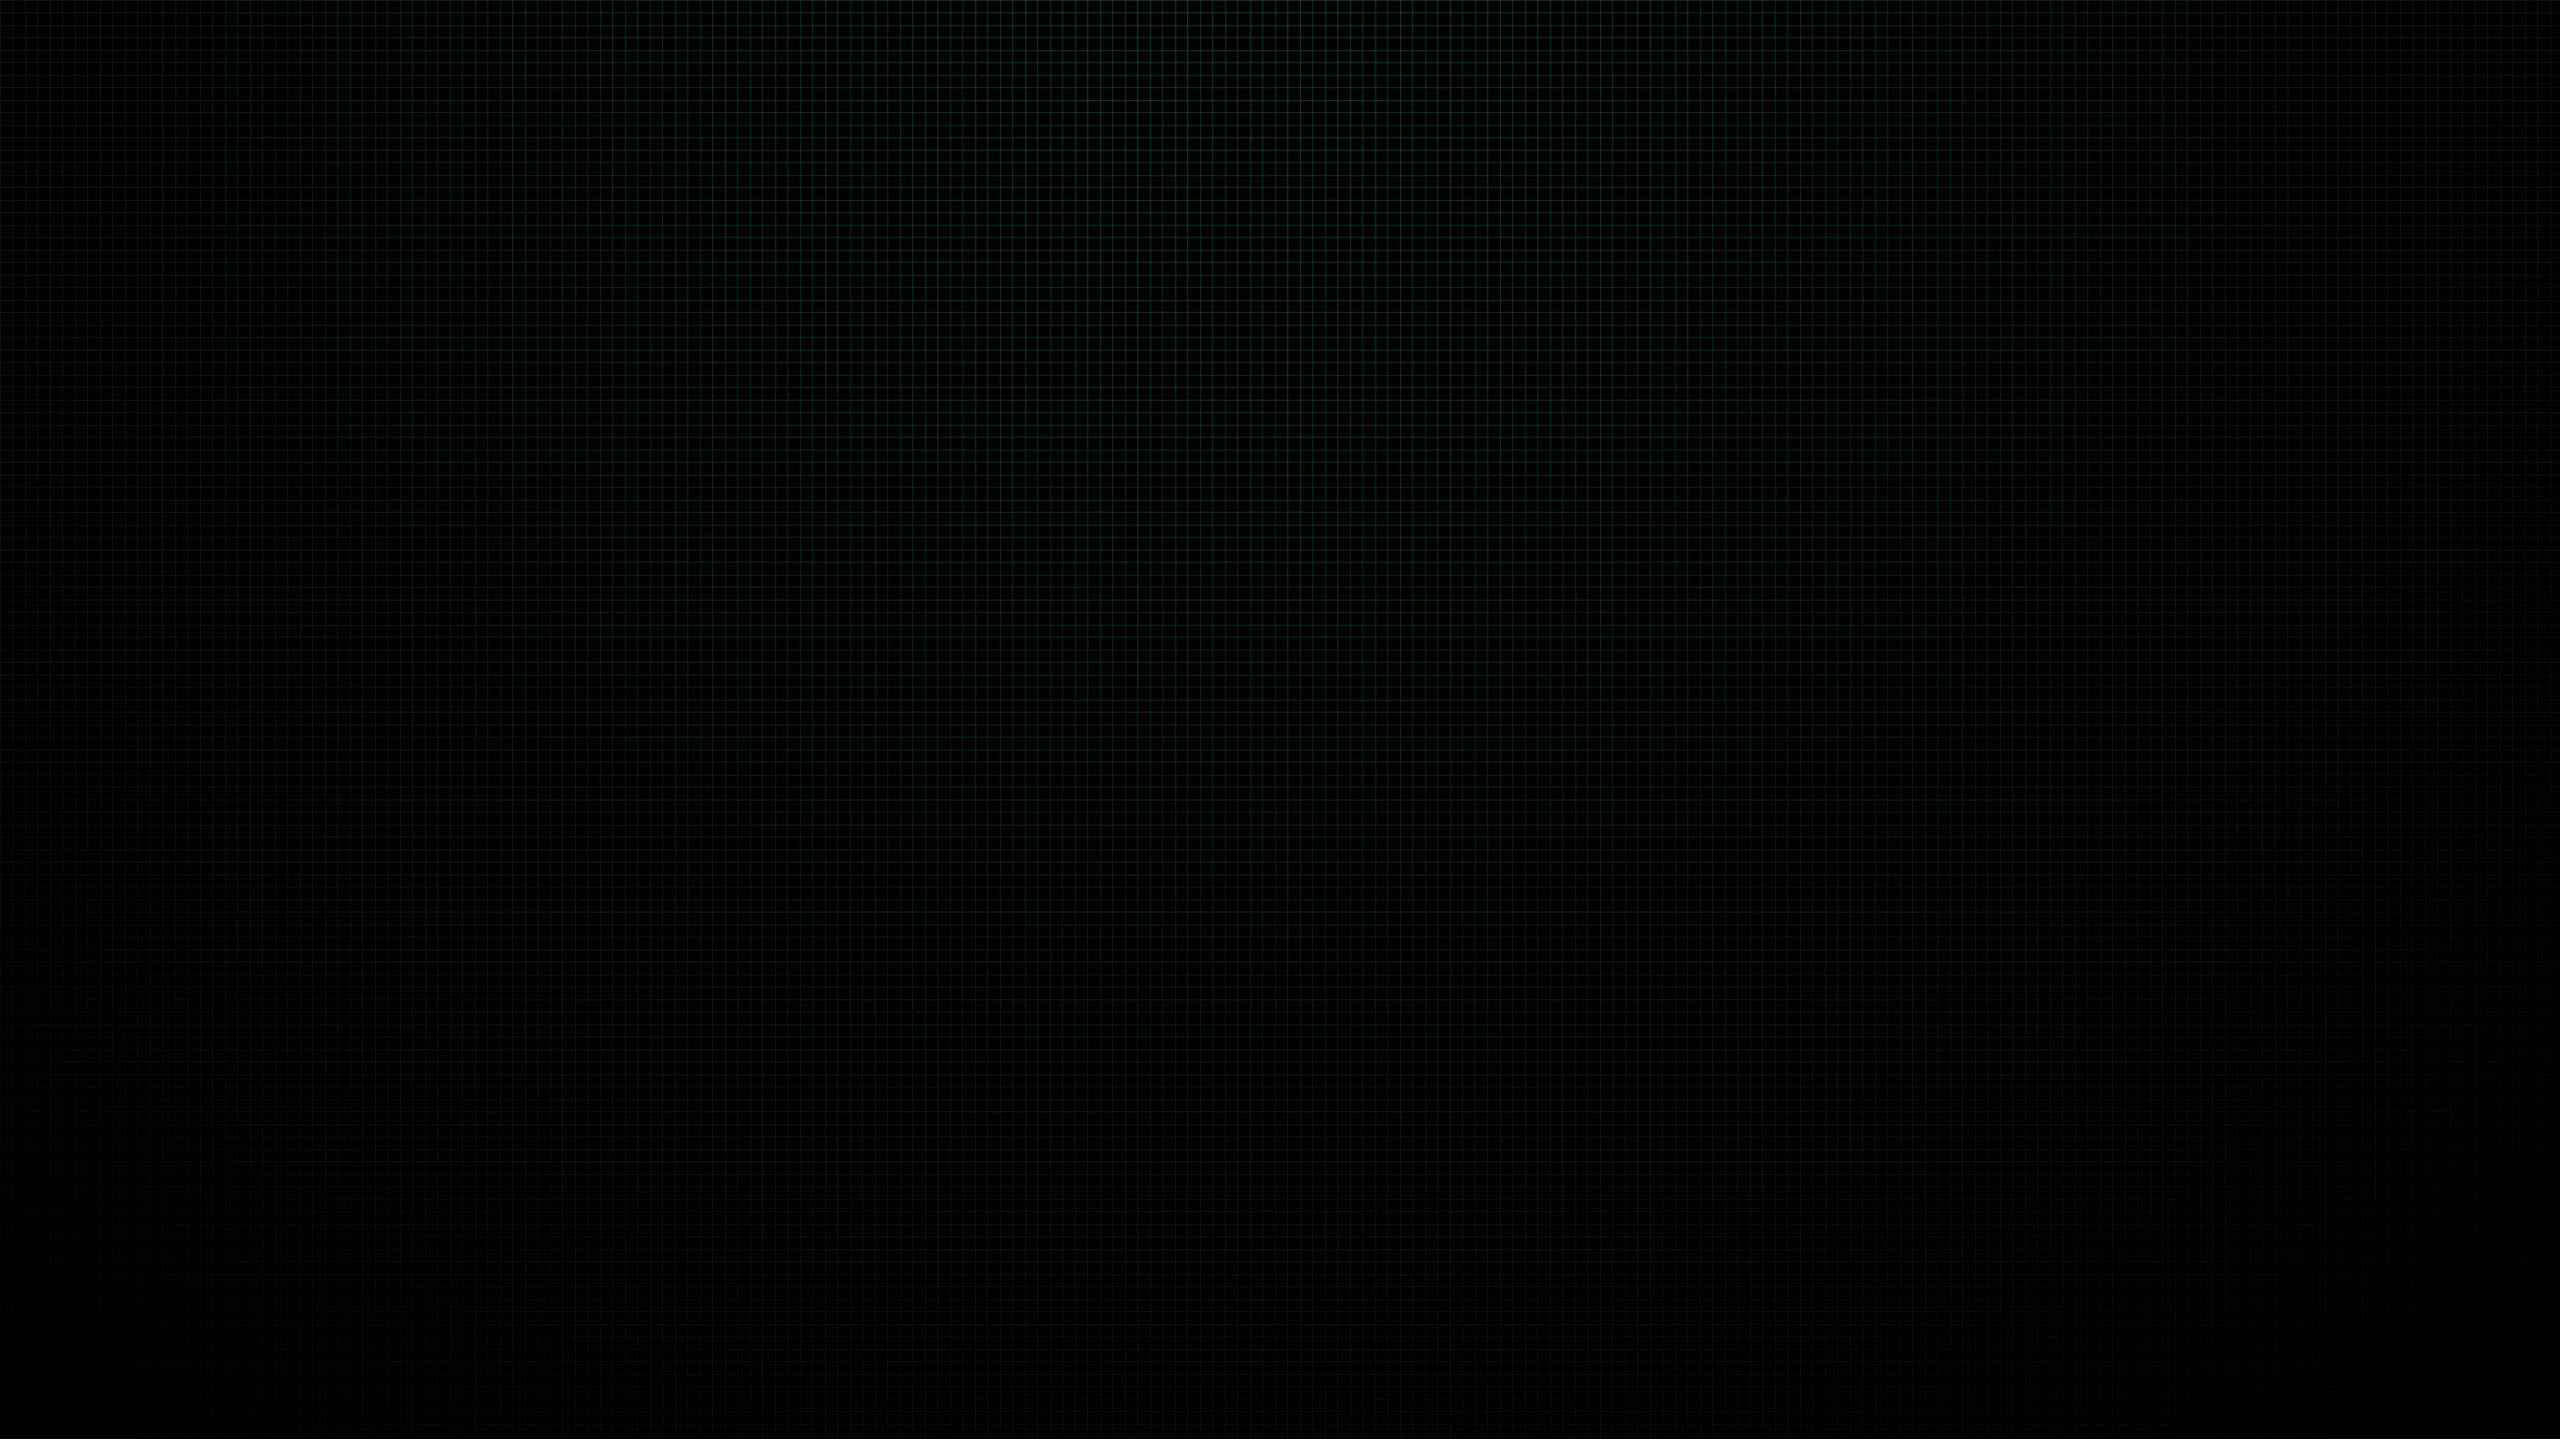 Pure black wallpaper is probably one of the Best background